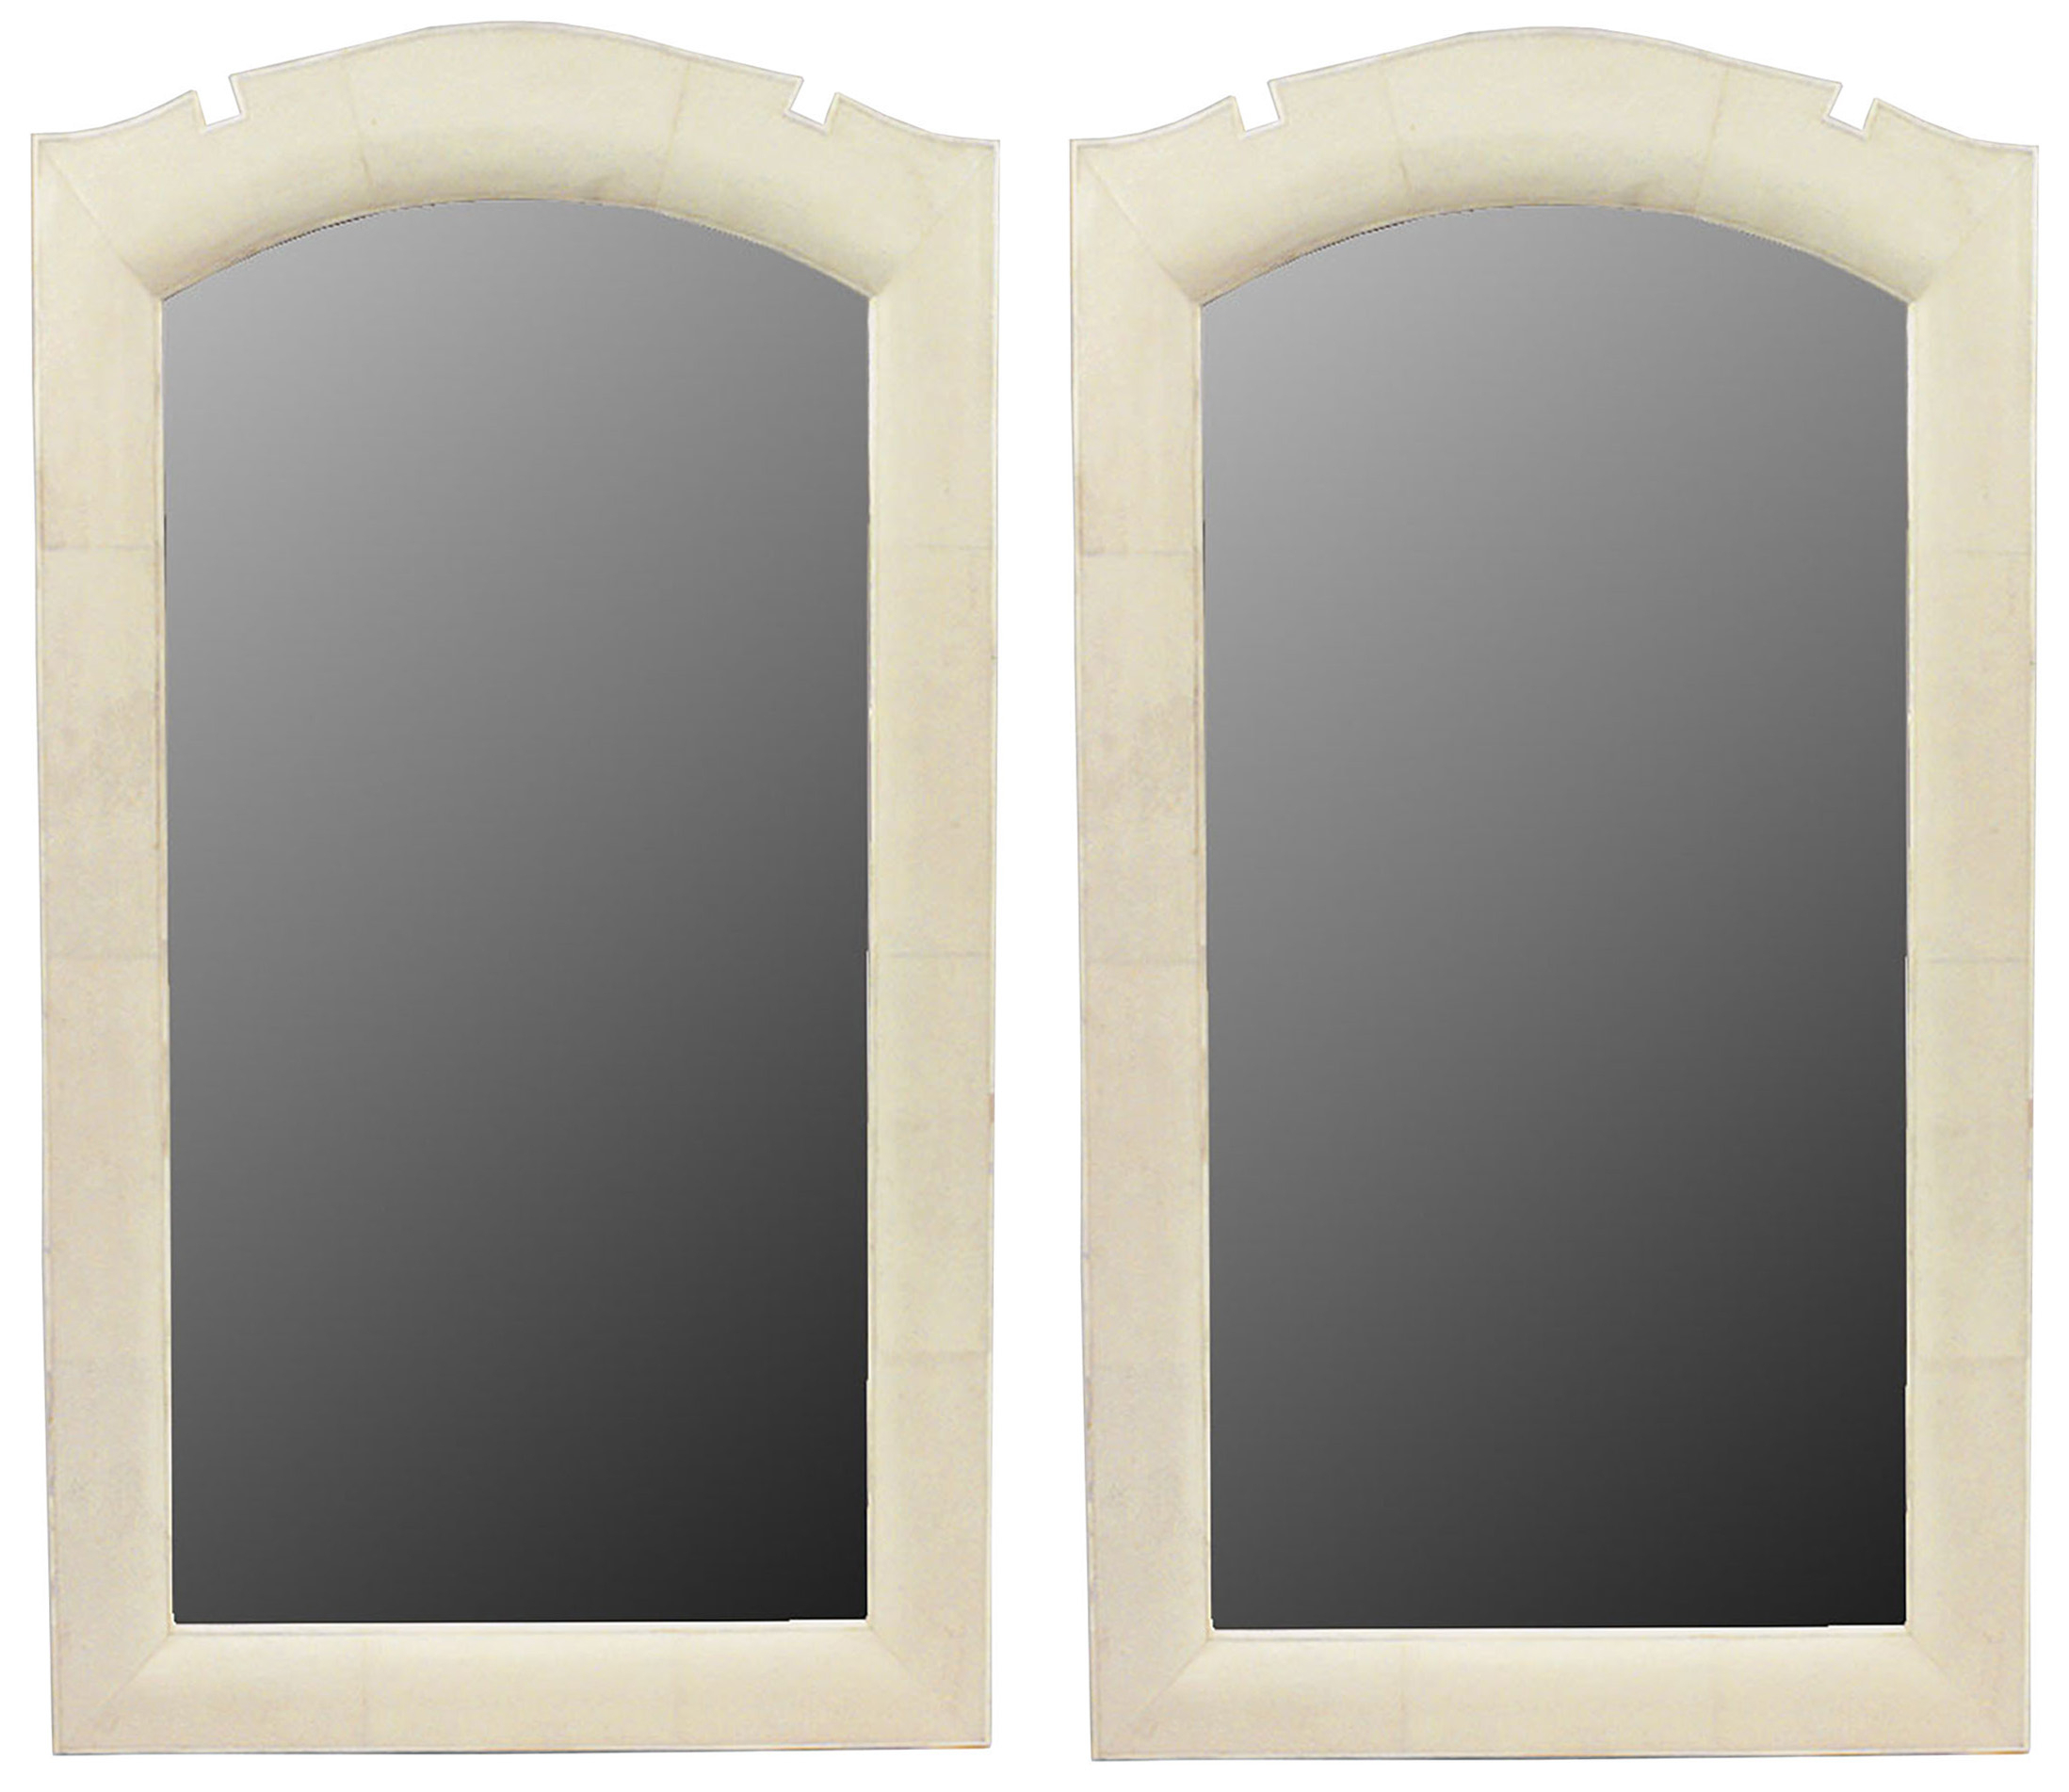 French Art Deco Style Beige Shagreen Wall Mirrors | Newel in Arch Vertical Wall Mirrors (Image 19 of 30)